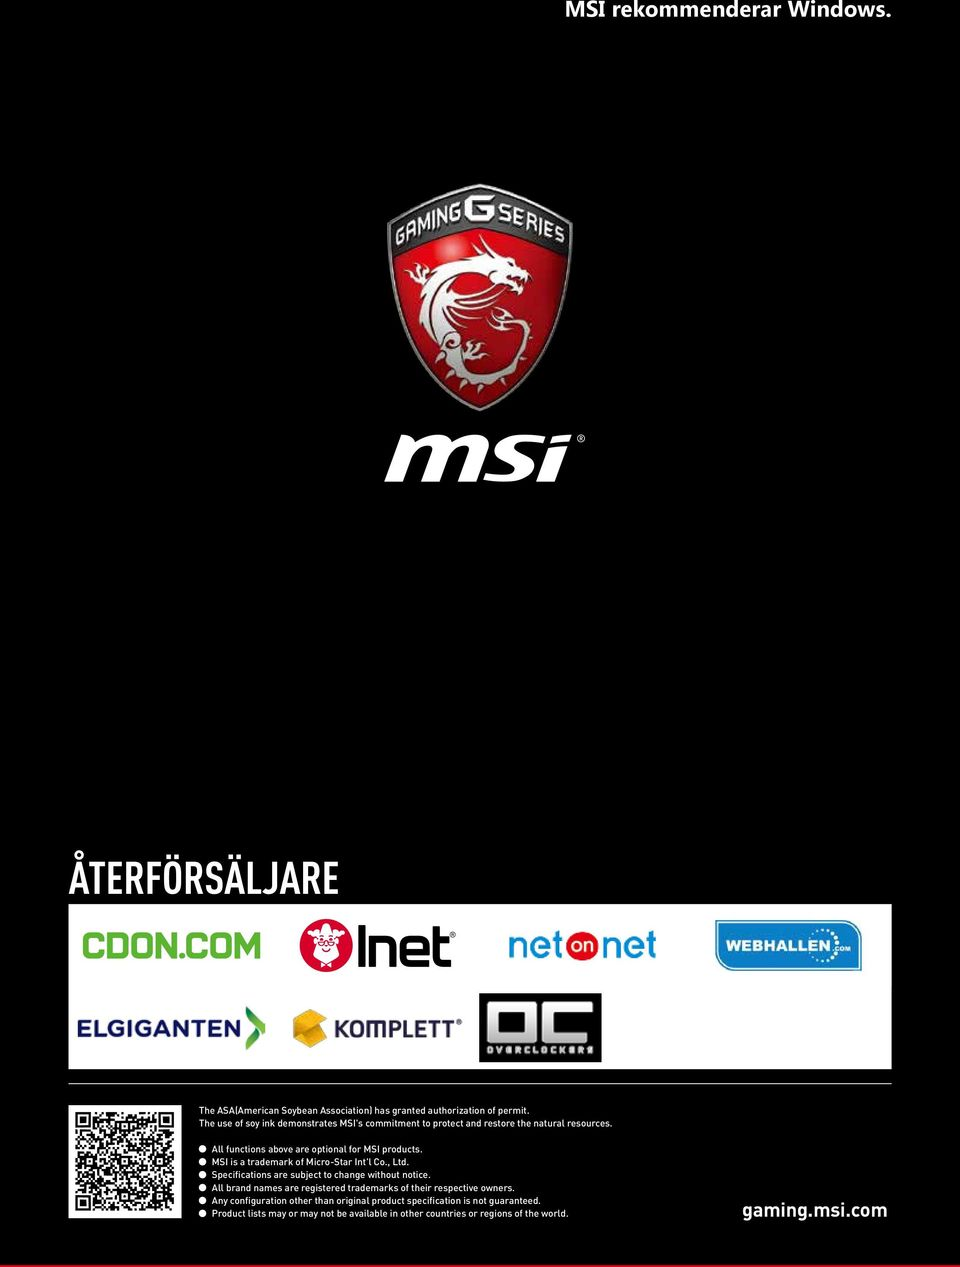 MSI is a trademark of Micro-Star Int'l Co., Ltd. Specifications are subject to change without notice.